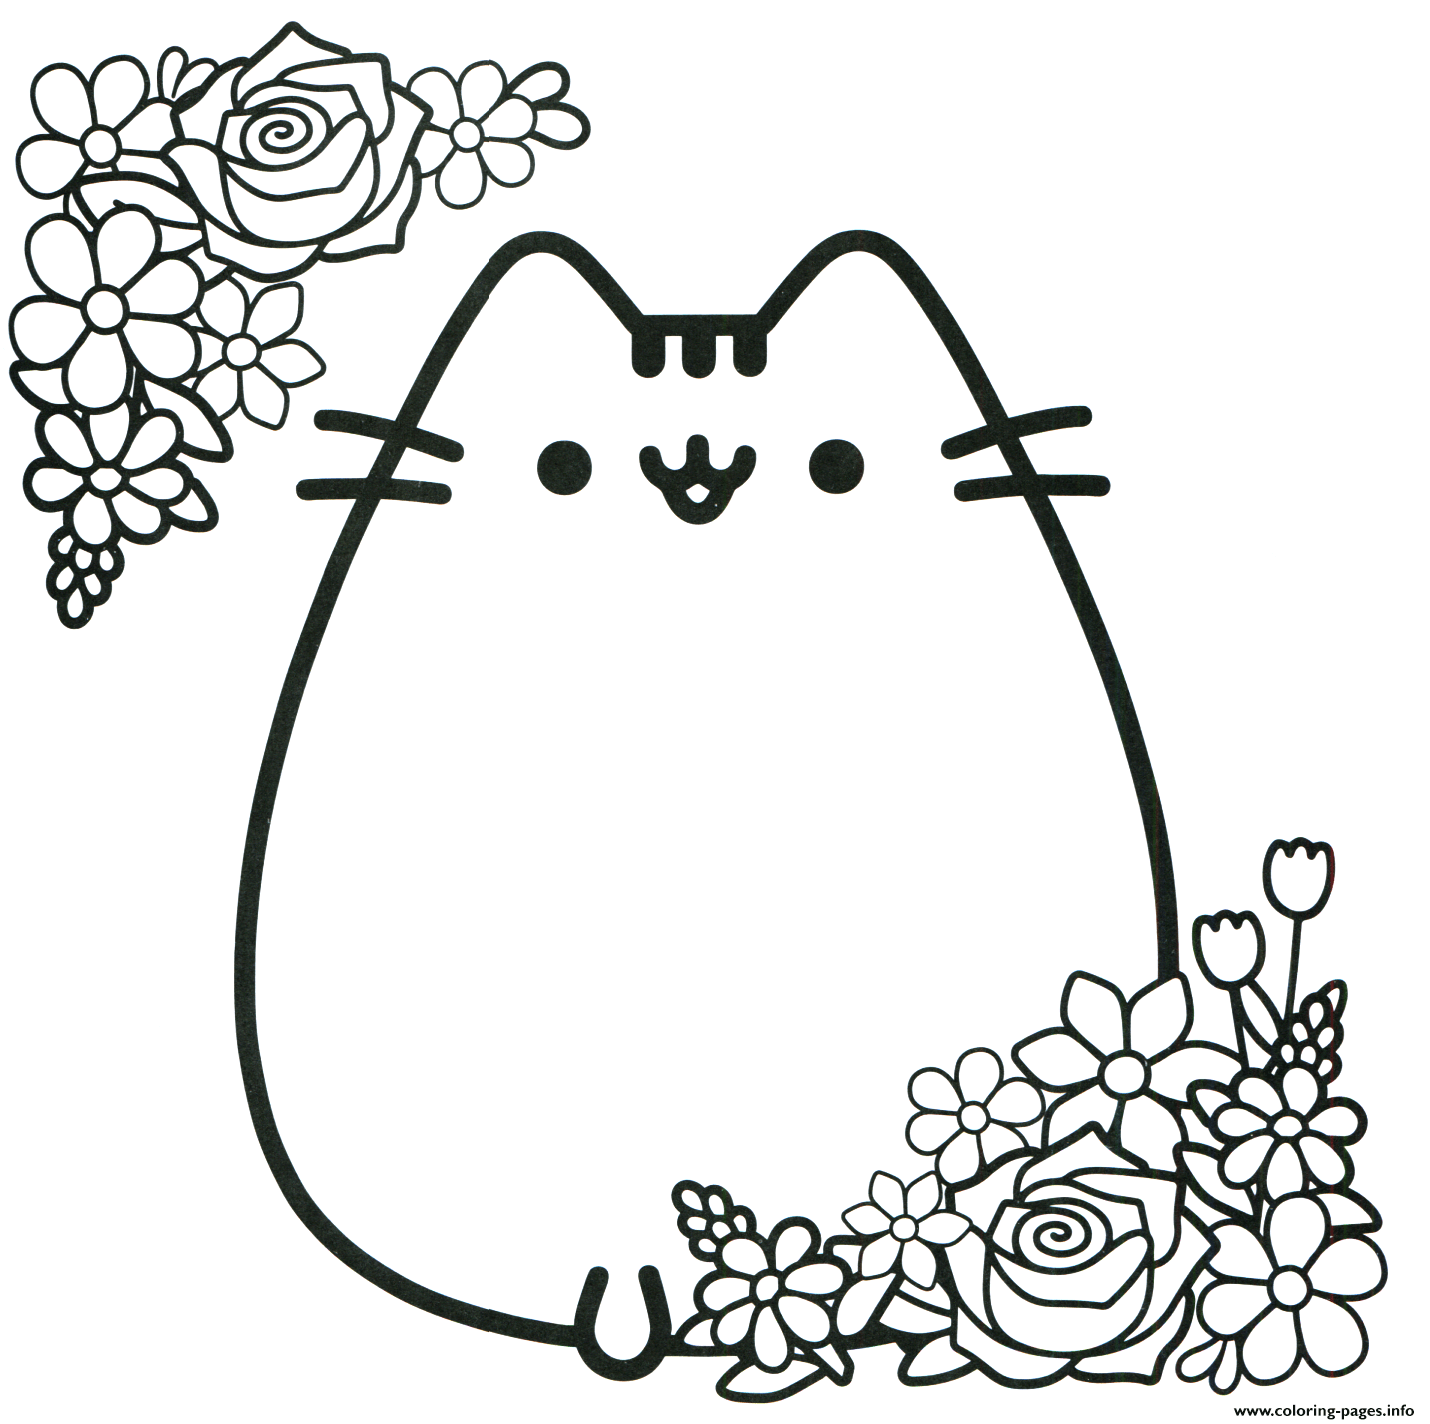 Grab Your New Coloring Pages Info For You Https Gethighit Com New Coloring Pages Info For You Pusheen Coloring Pages Cat Coloring Page Leaf Coloring Page